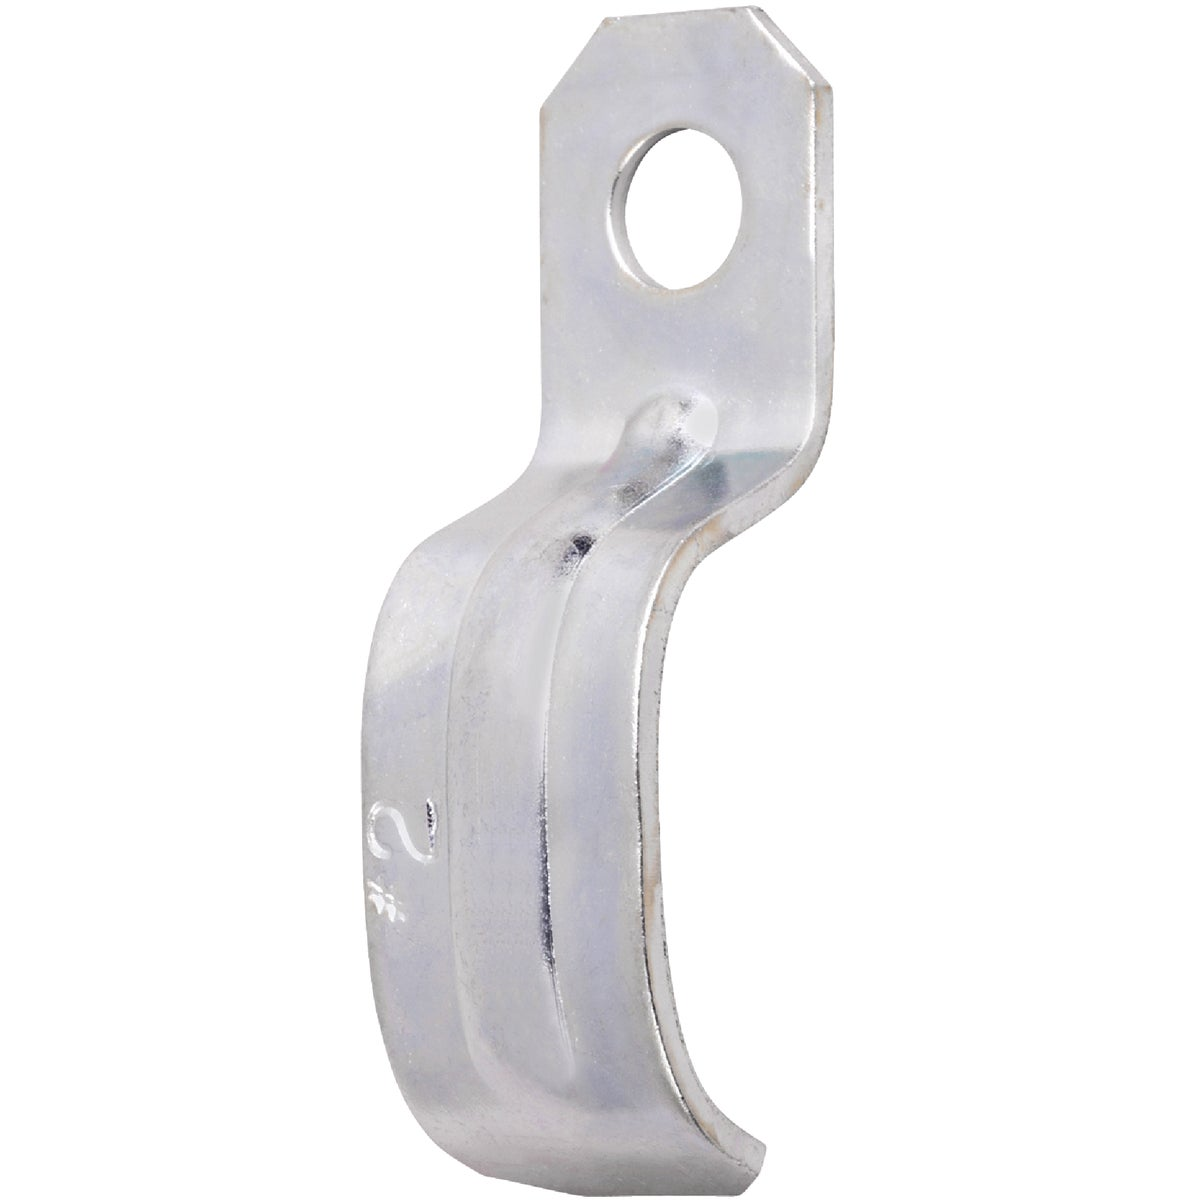 6PK 1-HOLE STRAP - SE1016 by Thomas & Betts